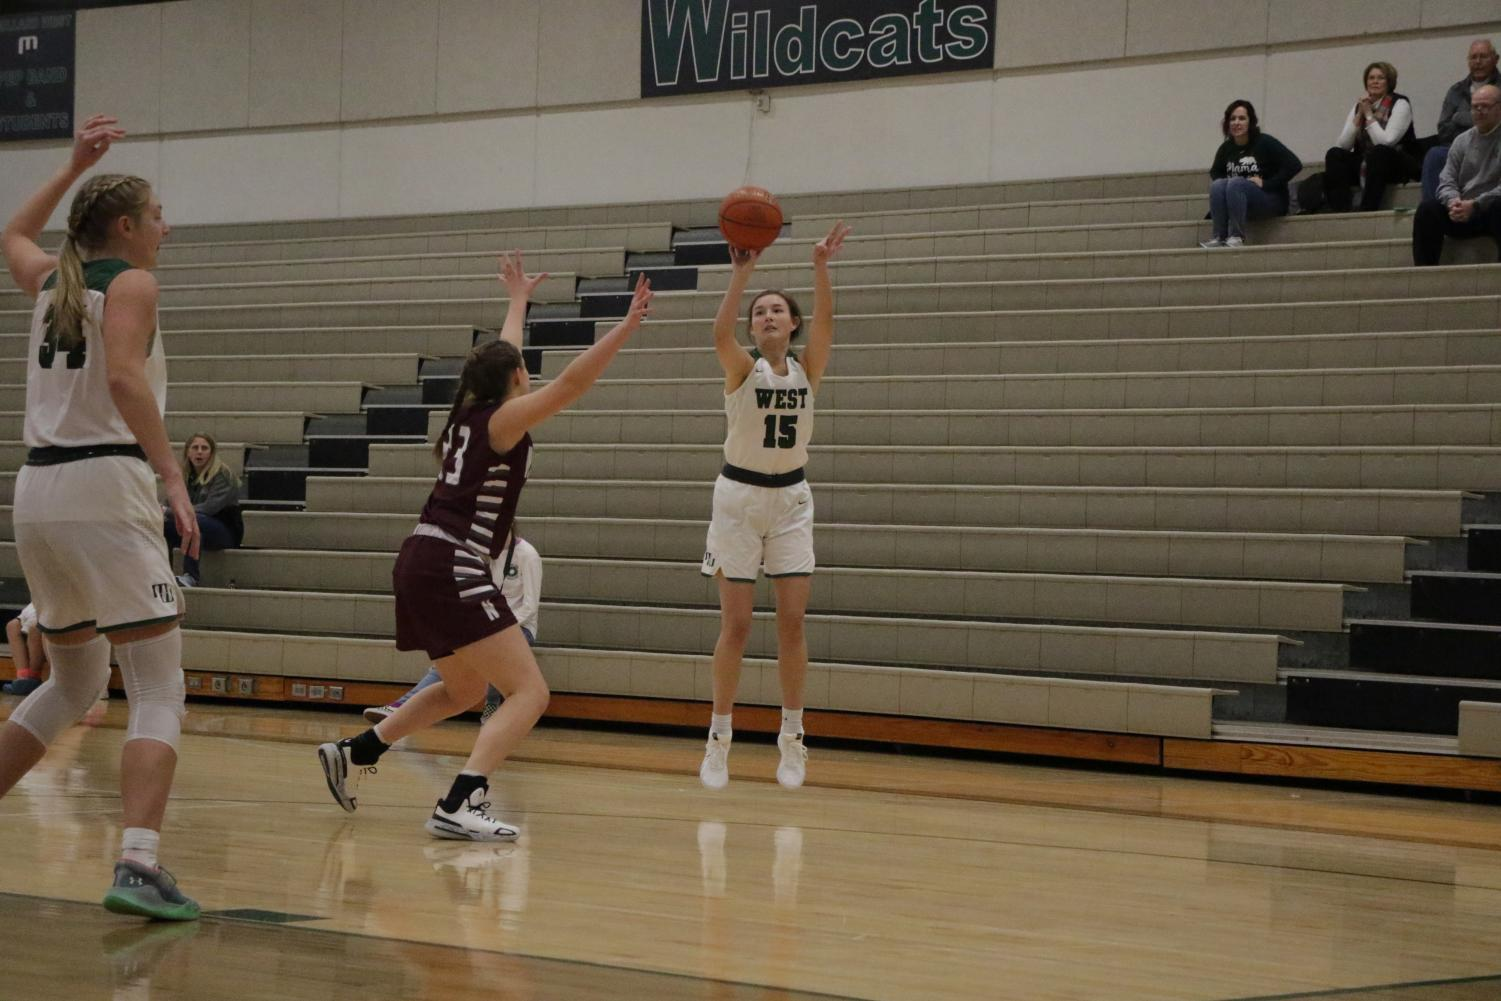 The Wildcats took down the Panthers 57-36. Darner took this three to increase the lead significantly against Norfolk.